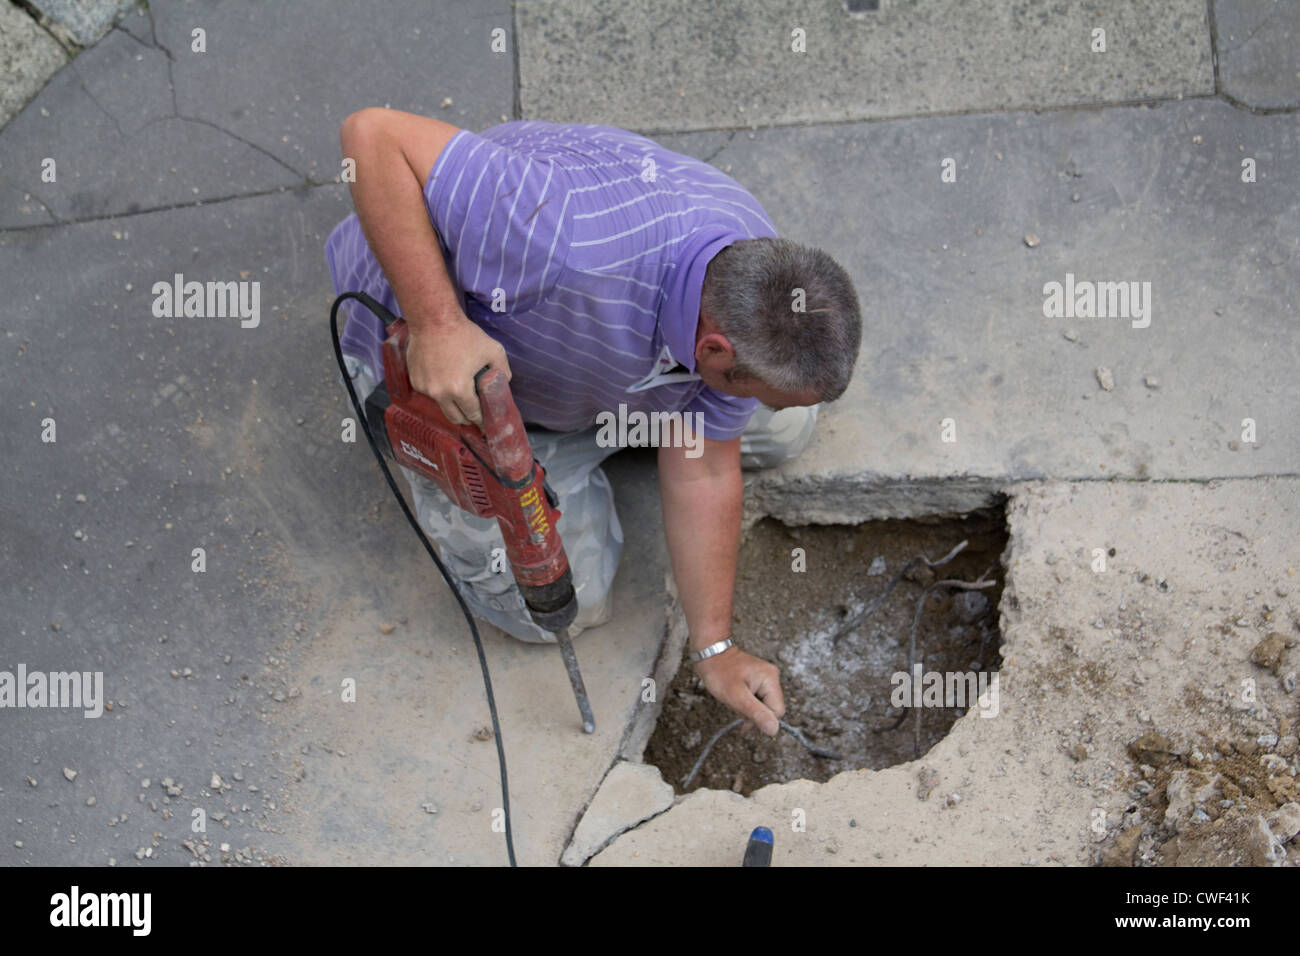 cabling repairs man drilling hole in the pavement City of London - Stock Image